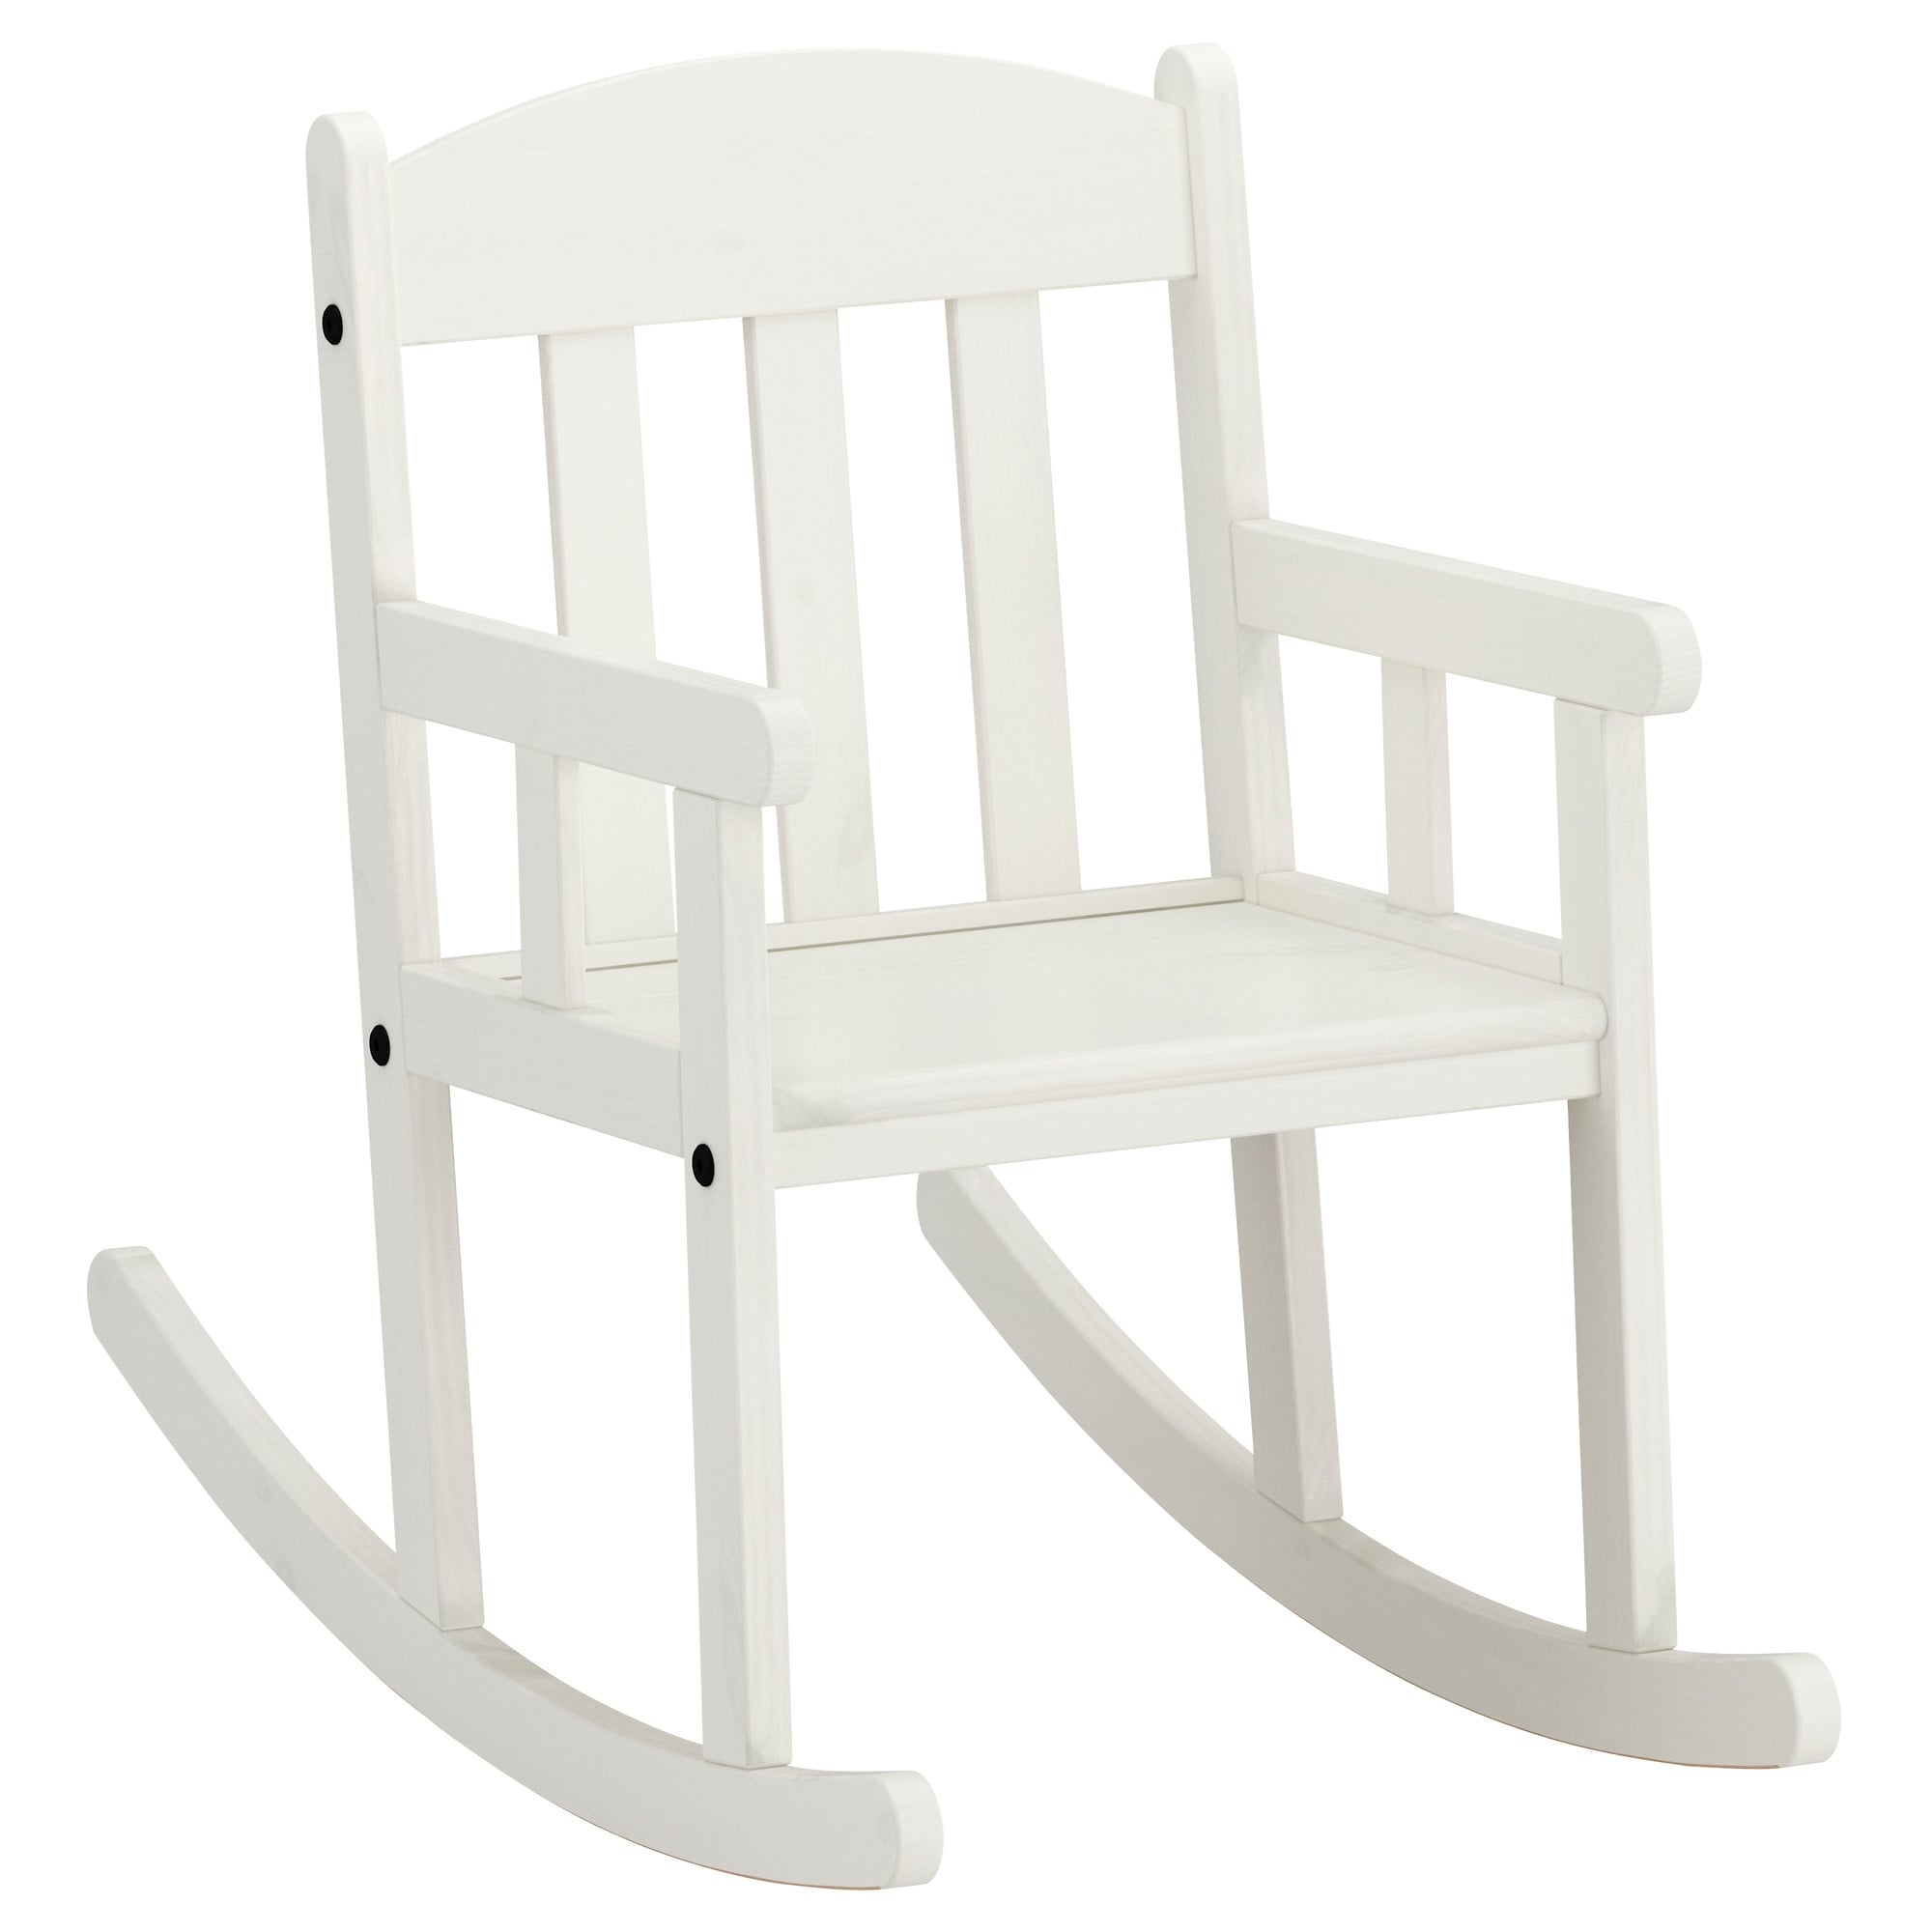 Sundvik Childrens Rocking Chair – Ikea Within 2018 Rocking Chairs At Ikea (View 13 of 15)